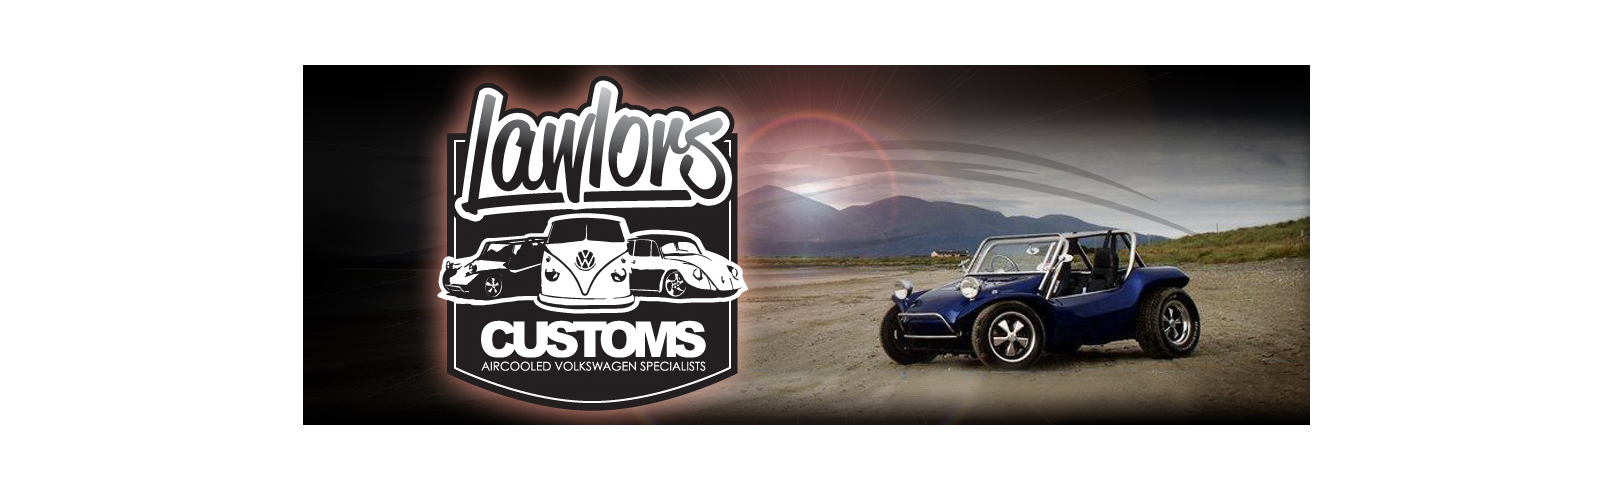 http://www.lawlorscustoms.com/